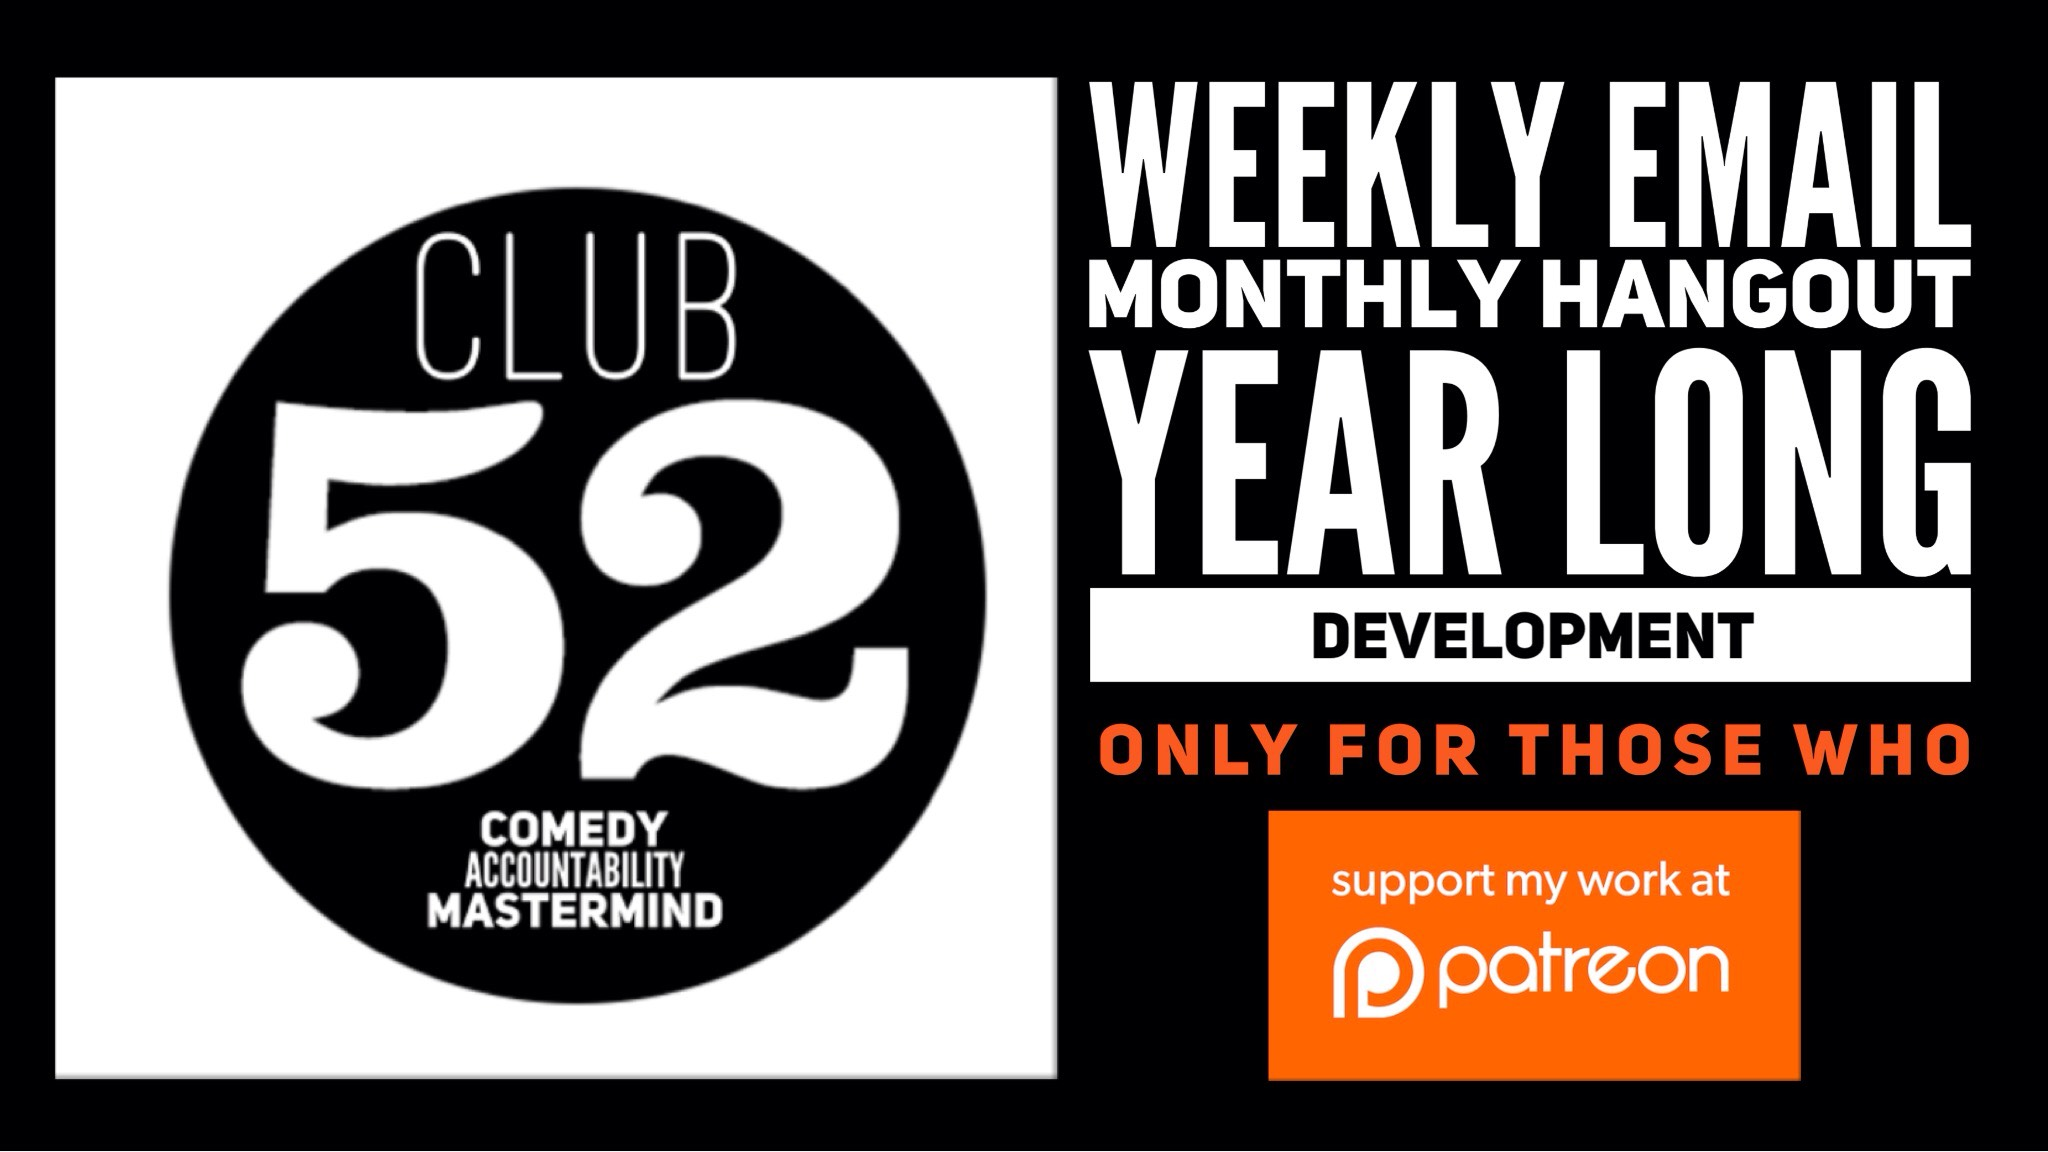 Club 52 patreon